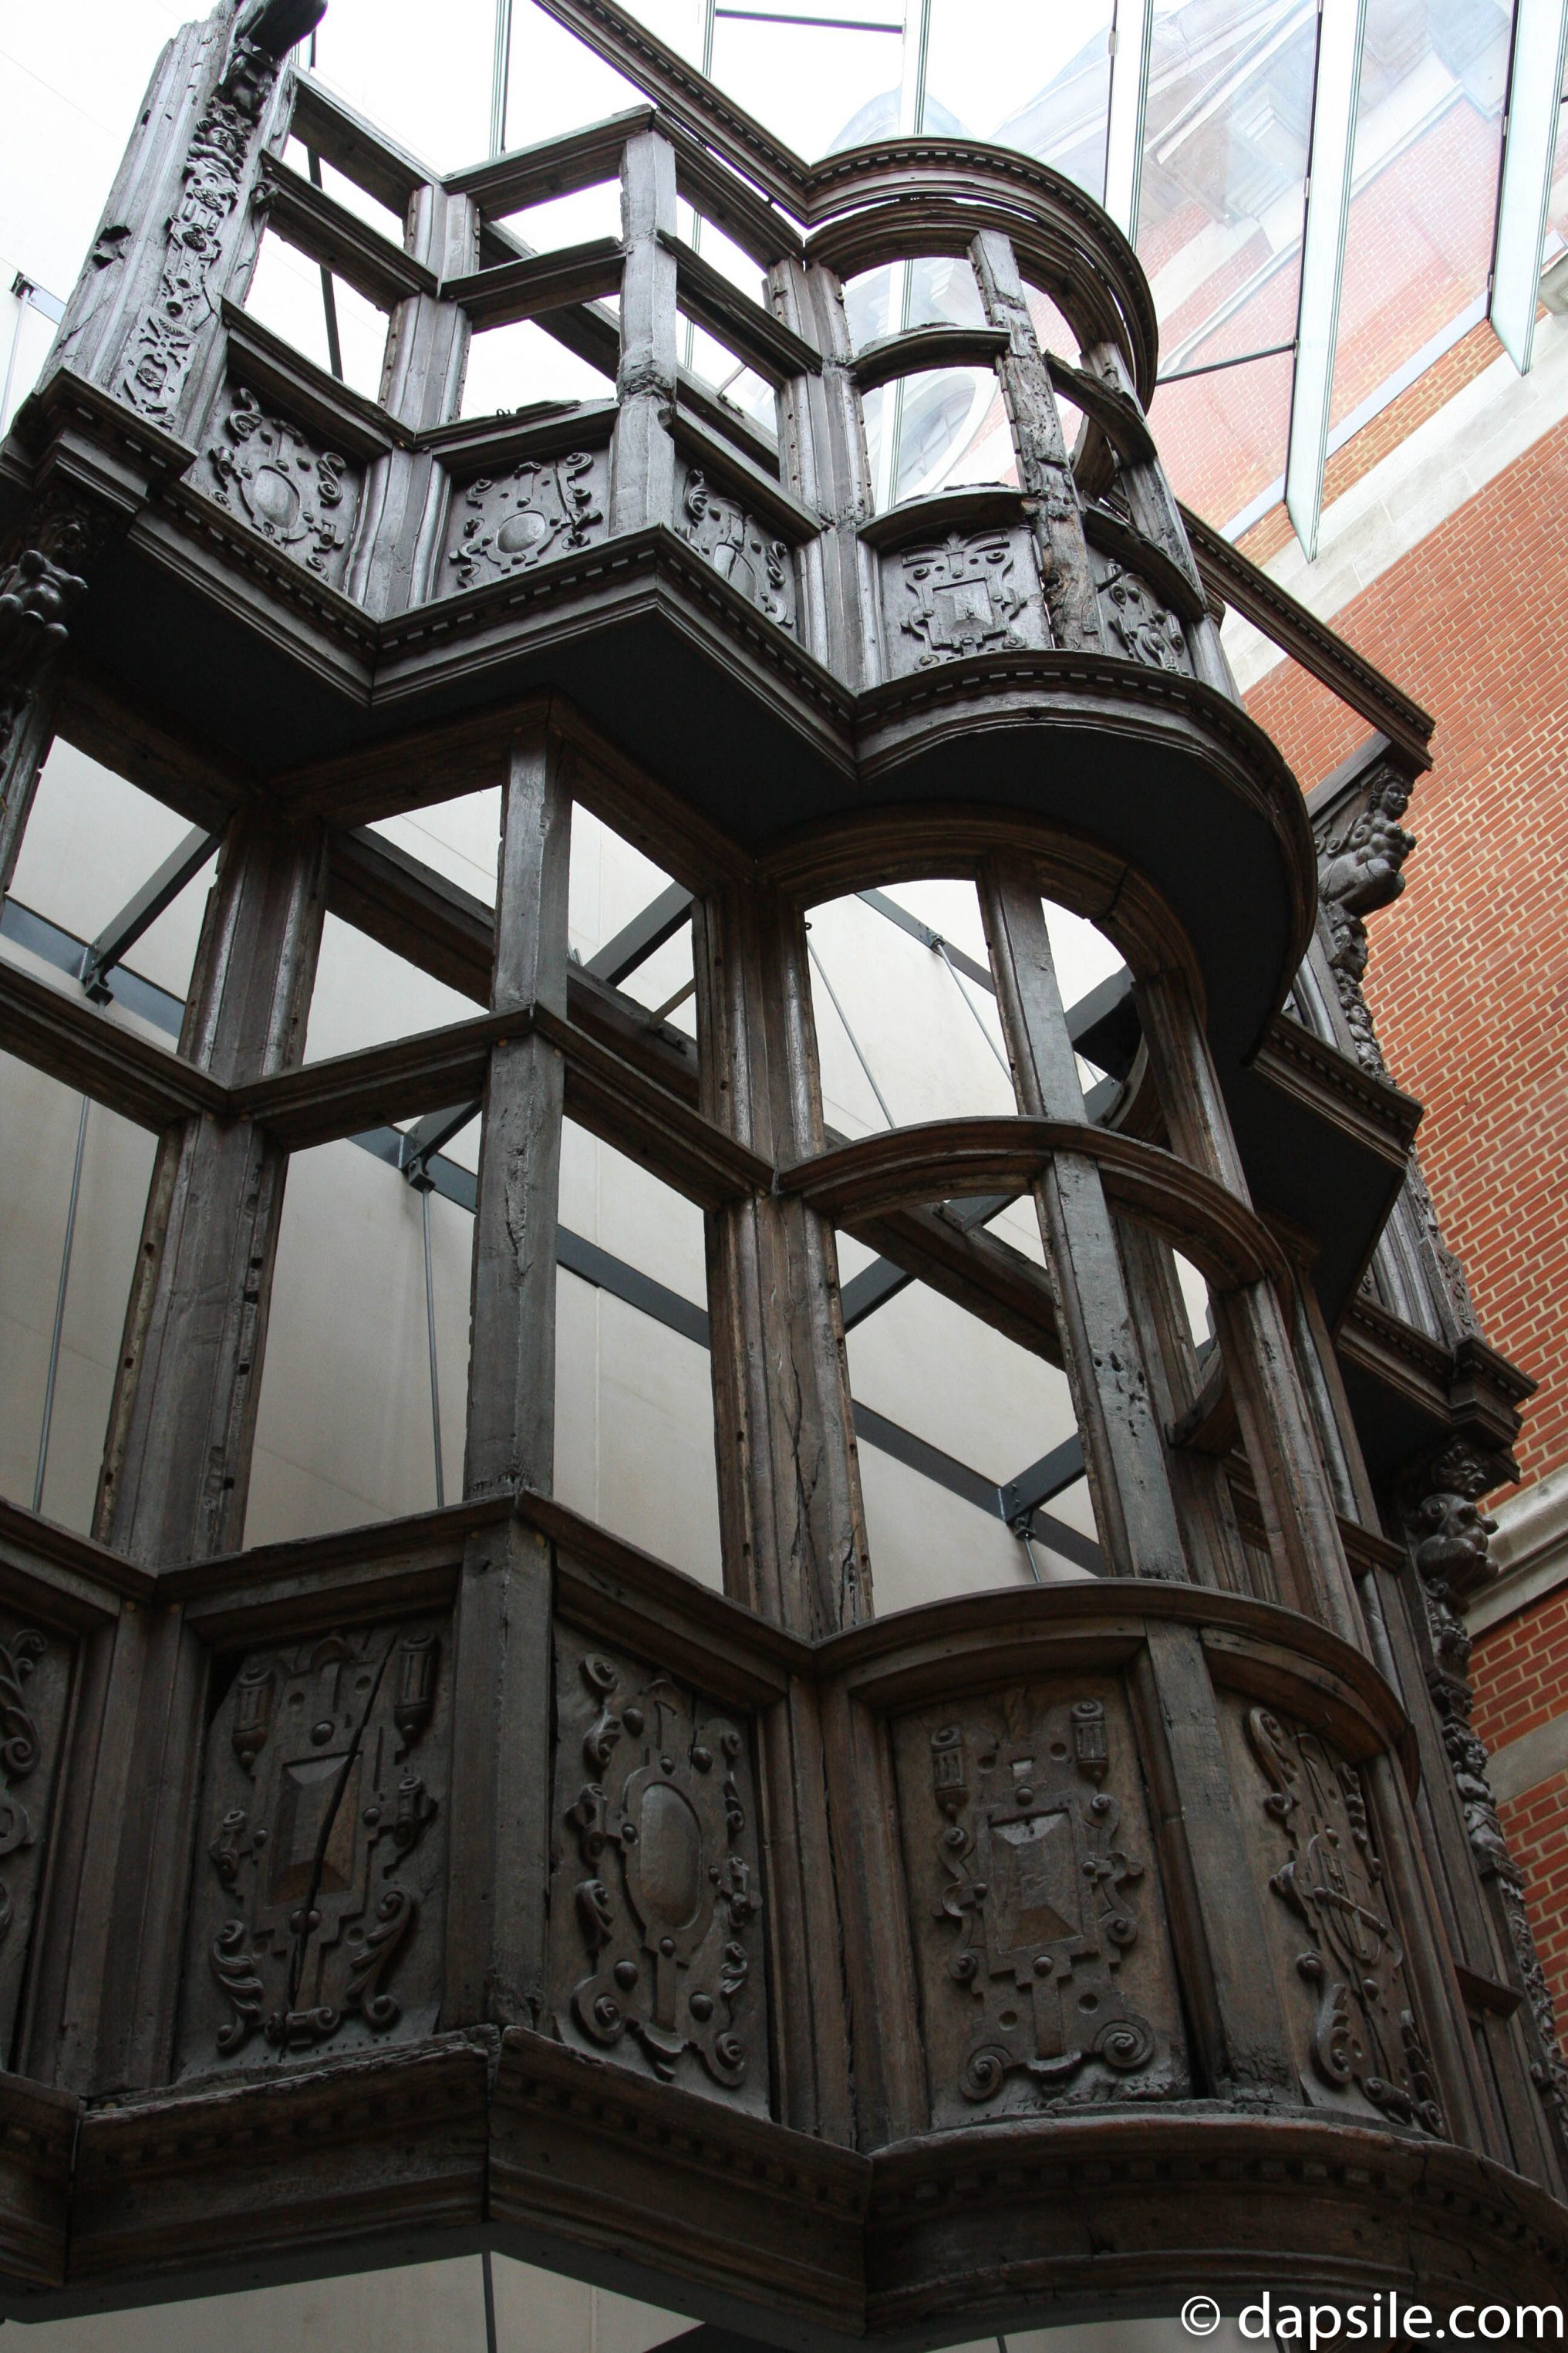 British Building Facade in the V&A Museum